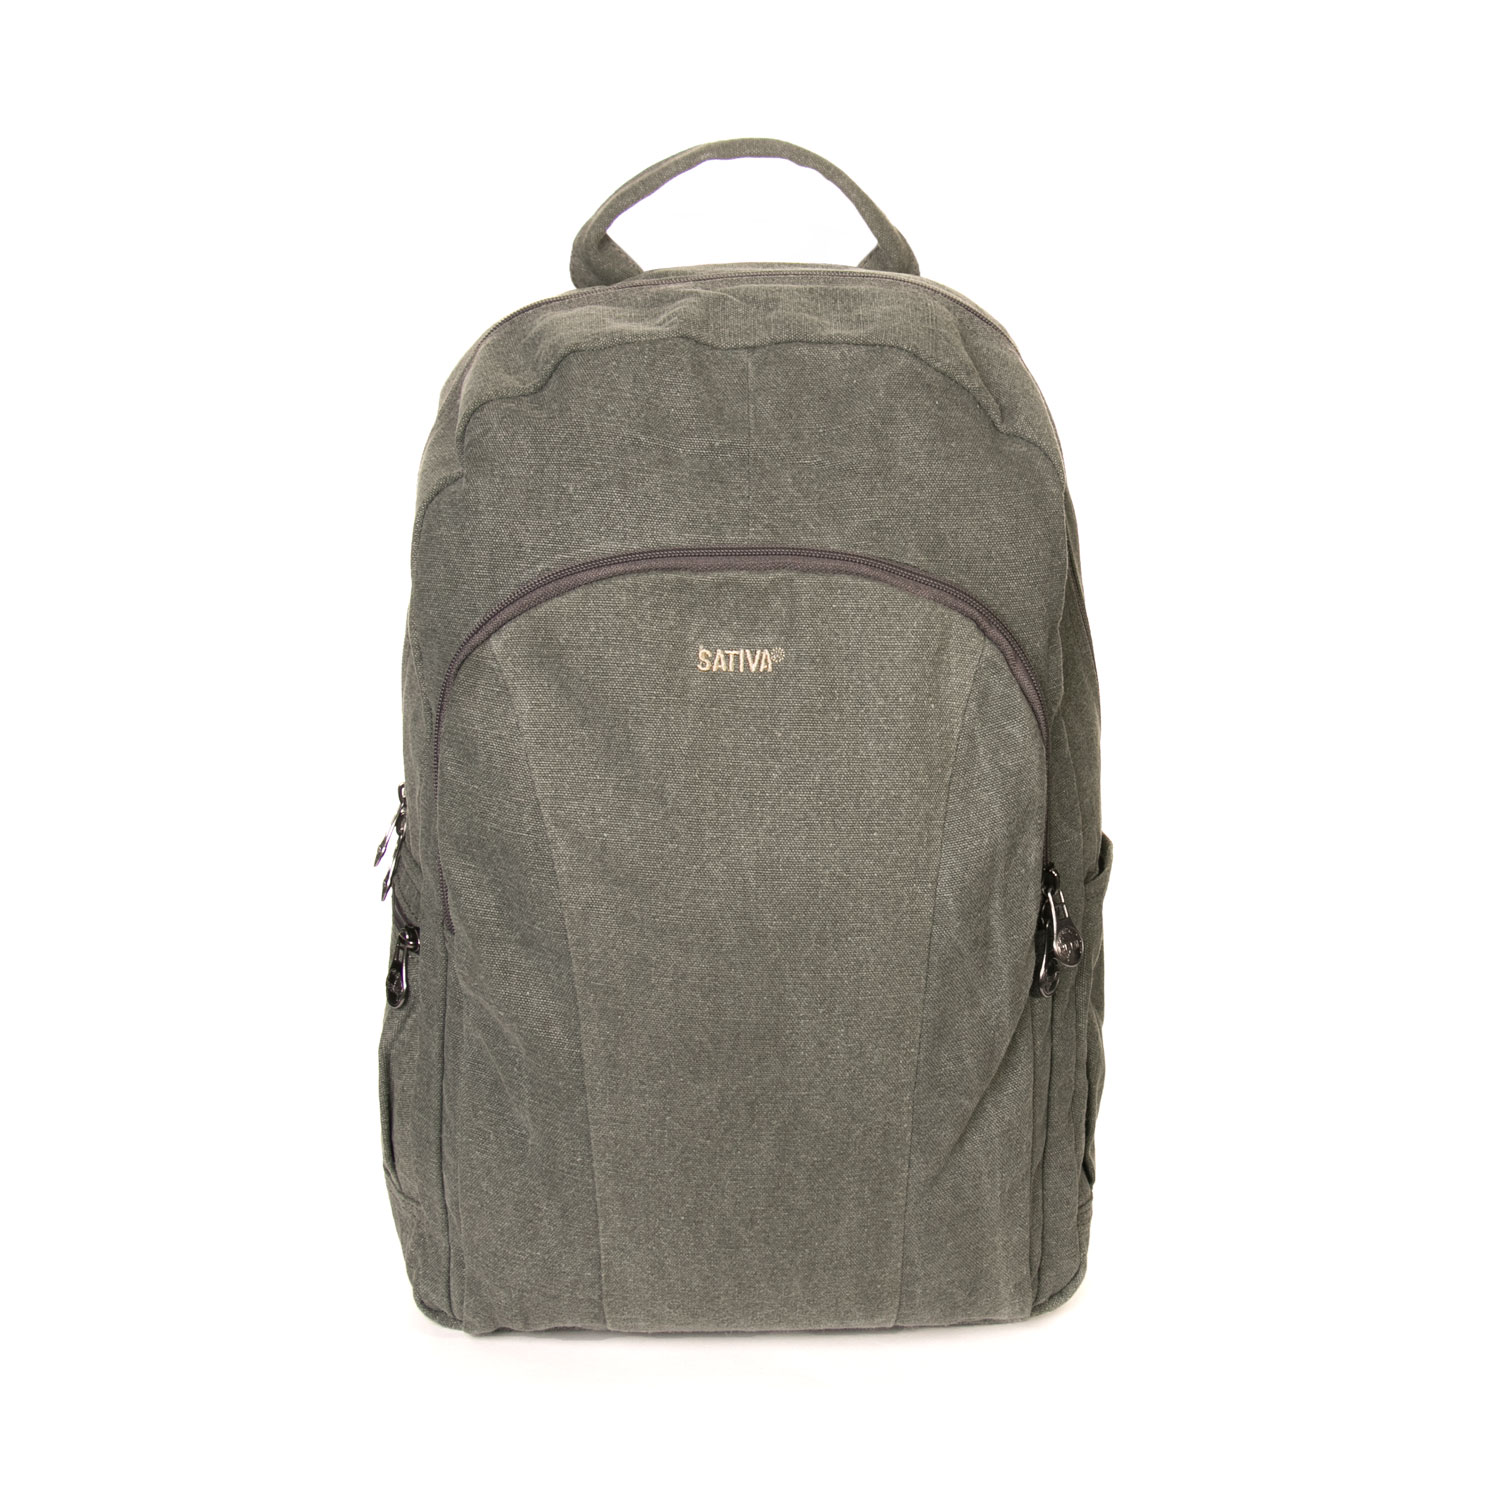 Sativa HEMP S10100 Organic Unisex Large Outdoor Multiuse Laptop Tablet iPad Galaxy Backpack Khaki